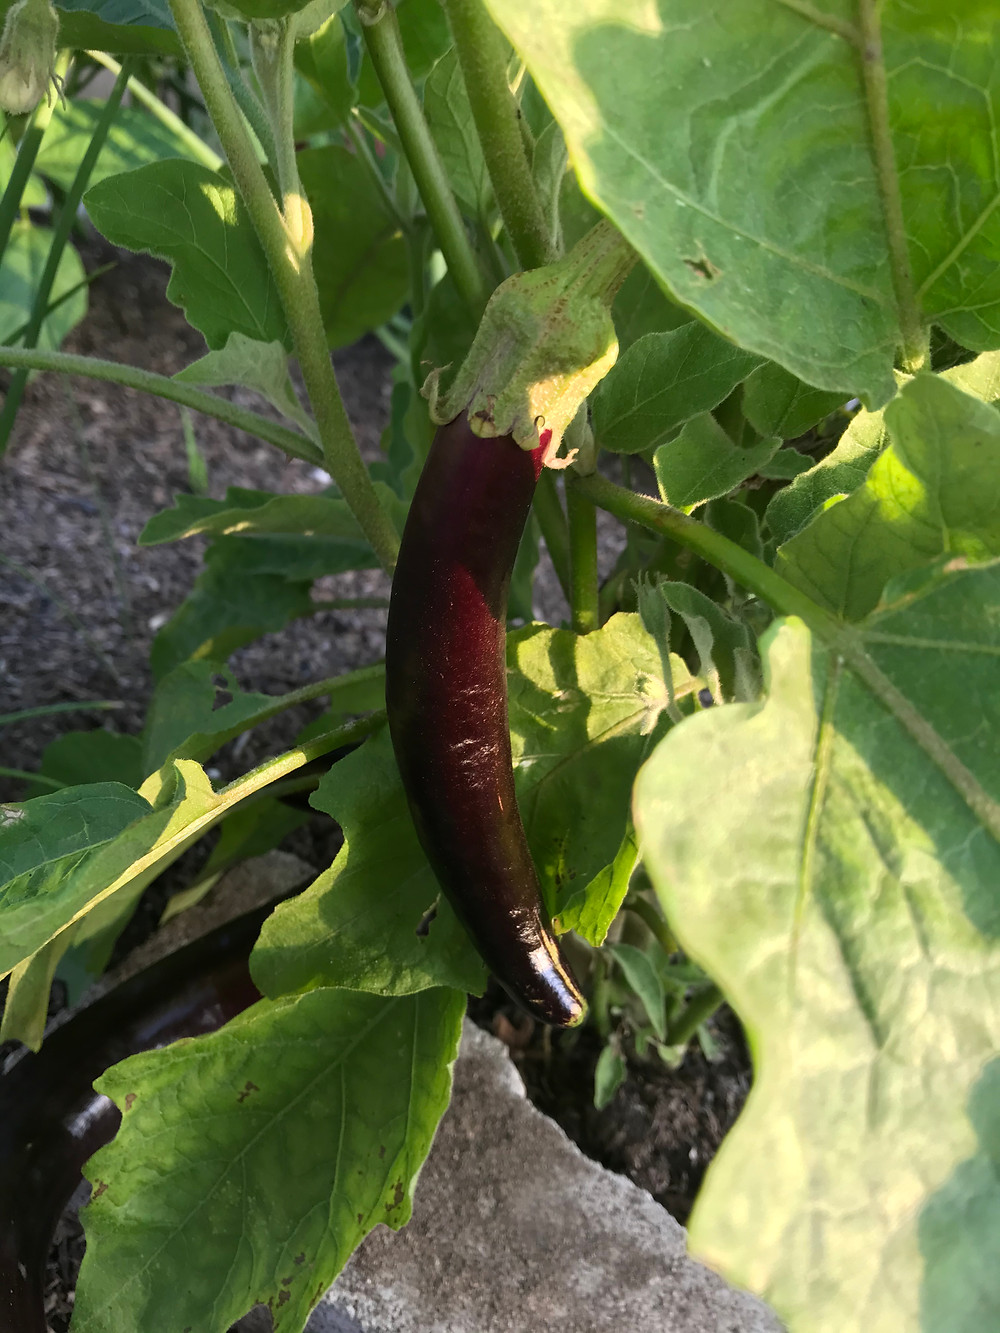 A long, thin, purple Chinese eggplant hangs from a stalk surrounded by green leaves